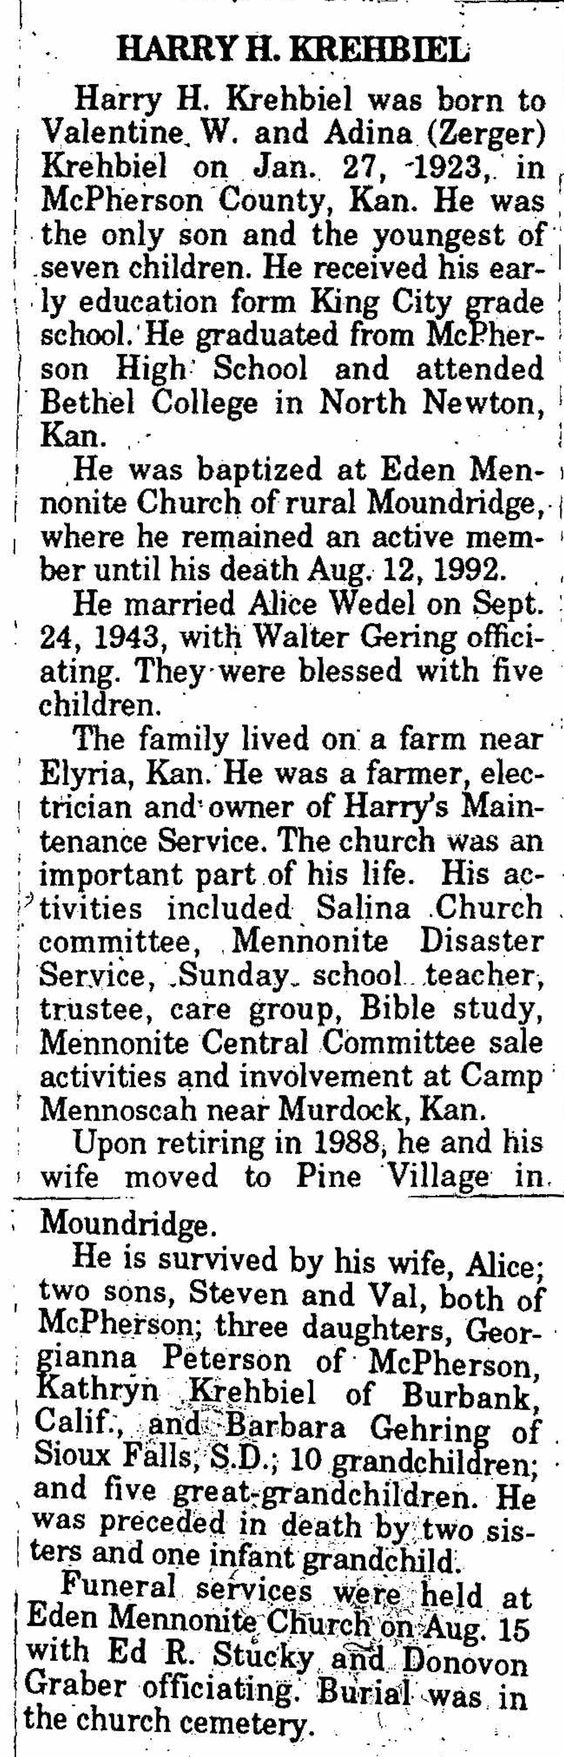 Obituary of Harry H. Krehbiel. Born to Valentine W. and Adina Zerger Krehbiel on January 27, 1923; died August 12, 1992 (1) From: Uploaded by user, no url (2) From Pin Board, Swiss Mennonites: https://www.pinterest.com/arfamilies/swiss-mennonites/